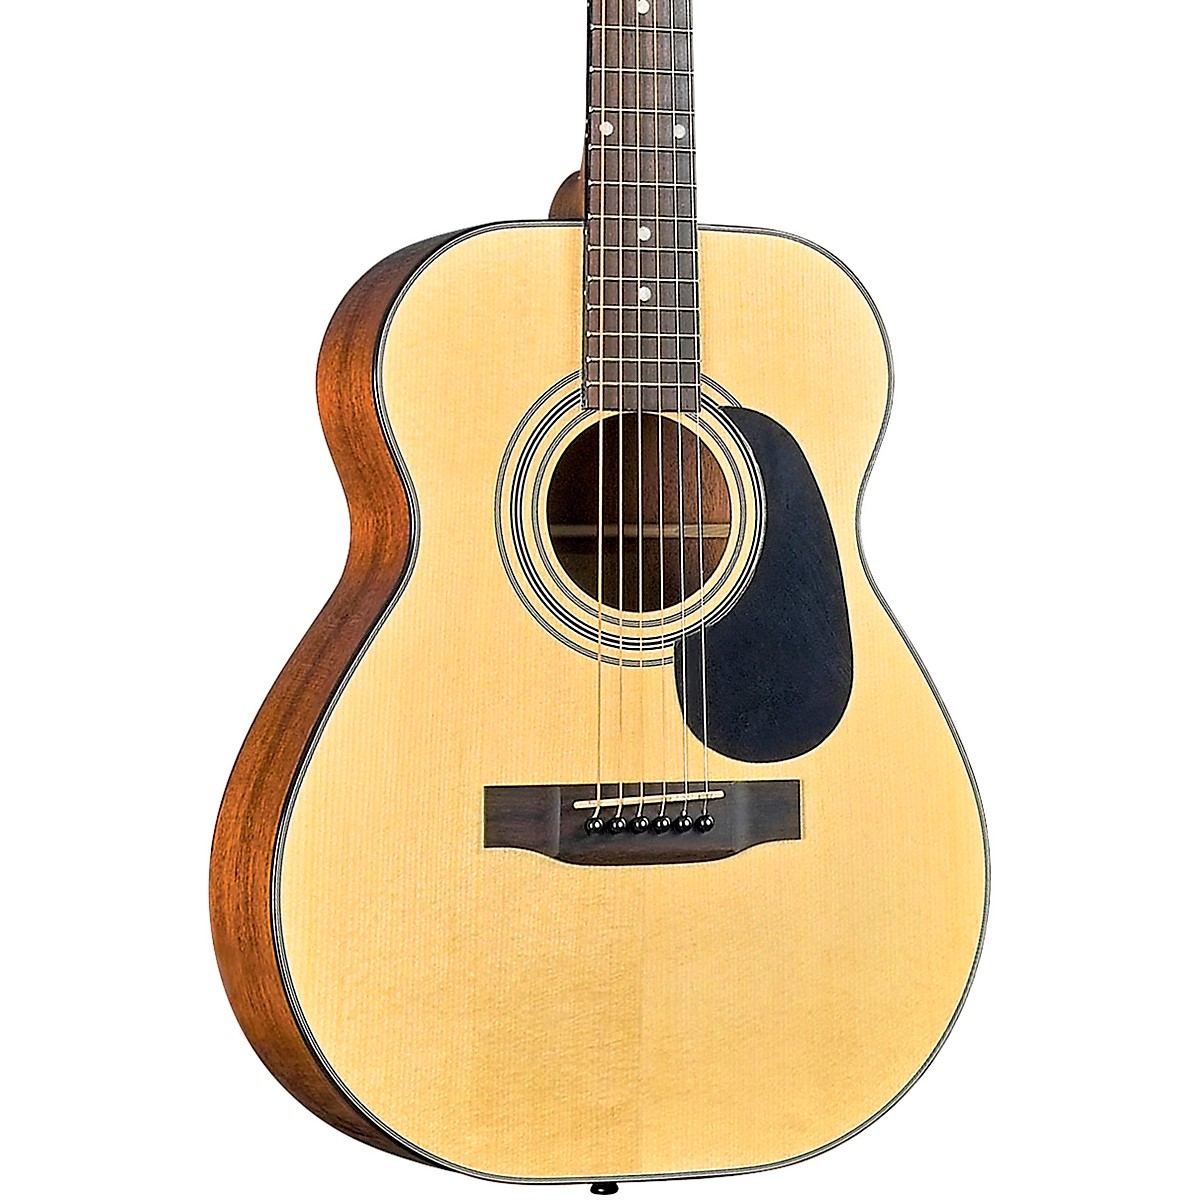 Bristol BB-16 Acoustic Guitar